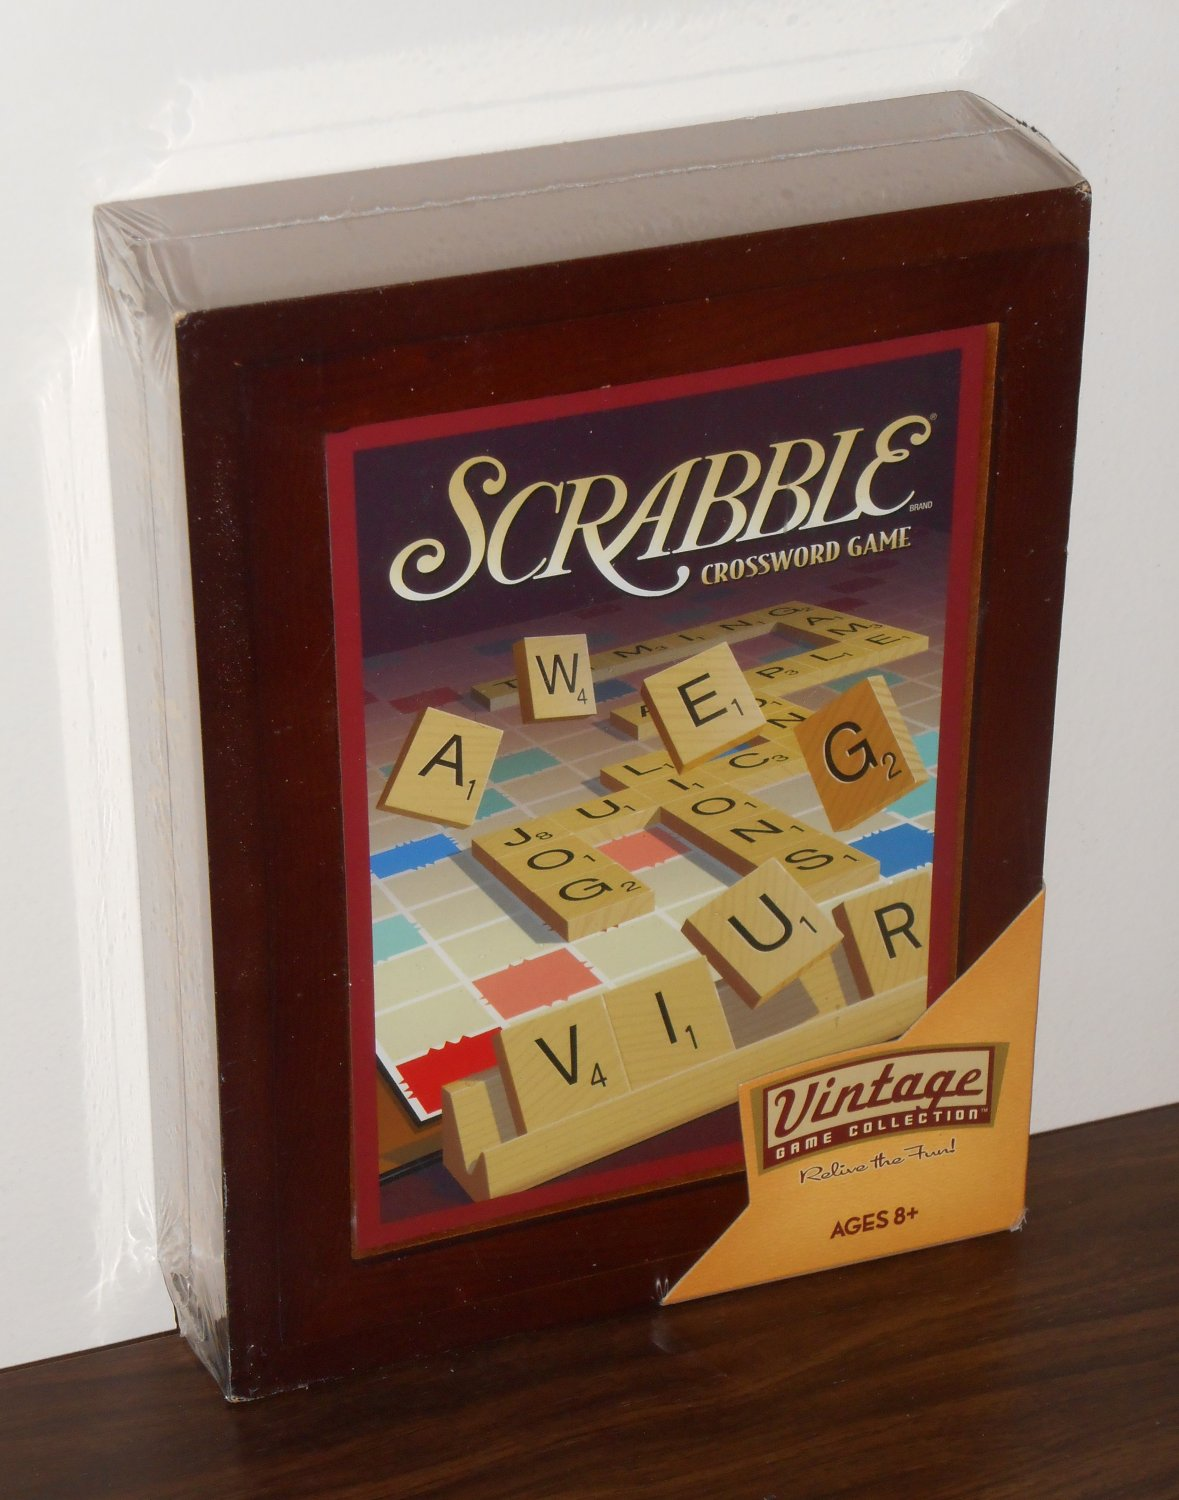 Scrabble Crossword Vintage Game Collection 01336 Wooden Box New Factory Sealed 2009